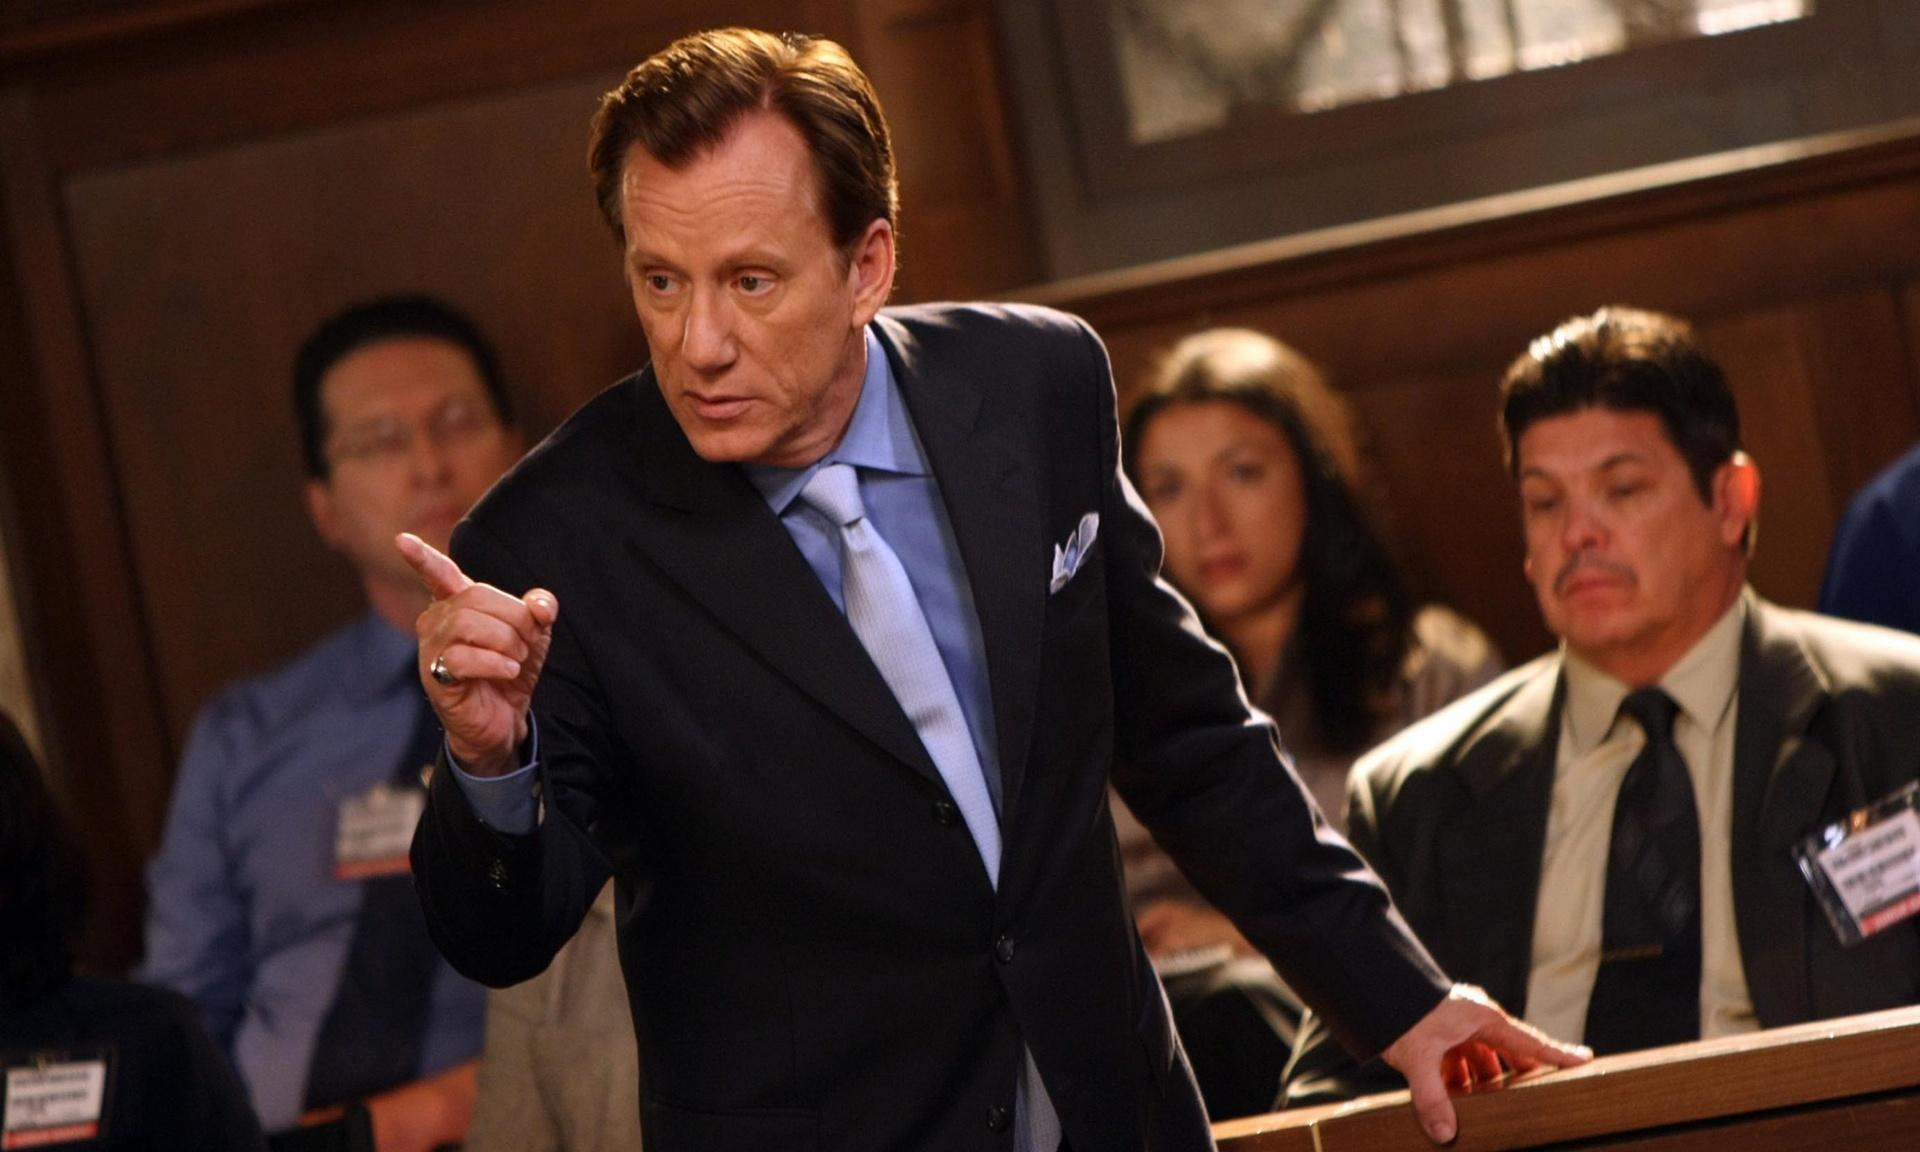 Judge Rules Actor James Woods Can Sue His Anonymous Twitter Abuser